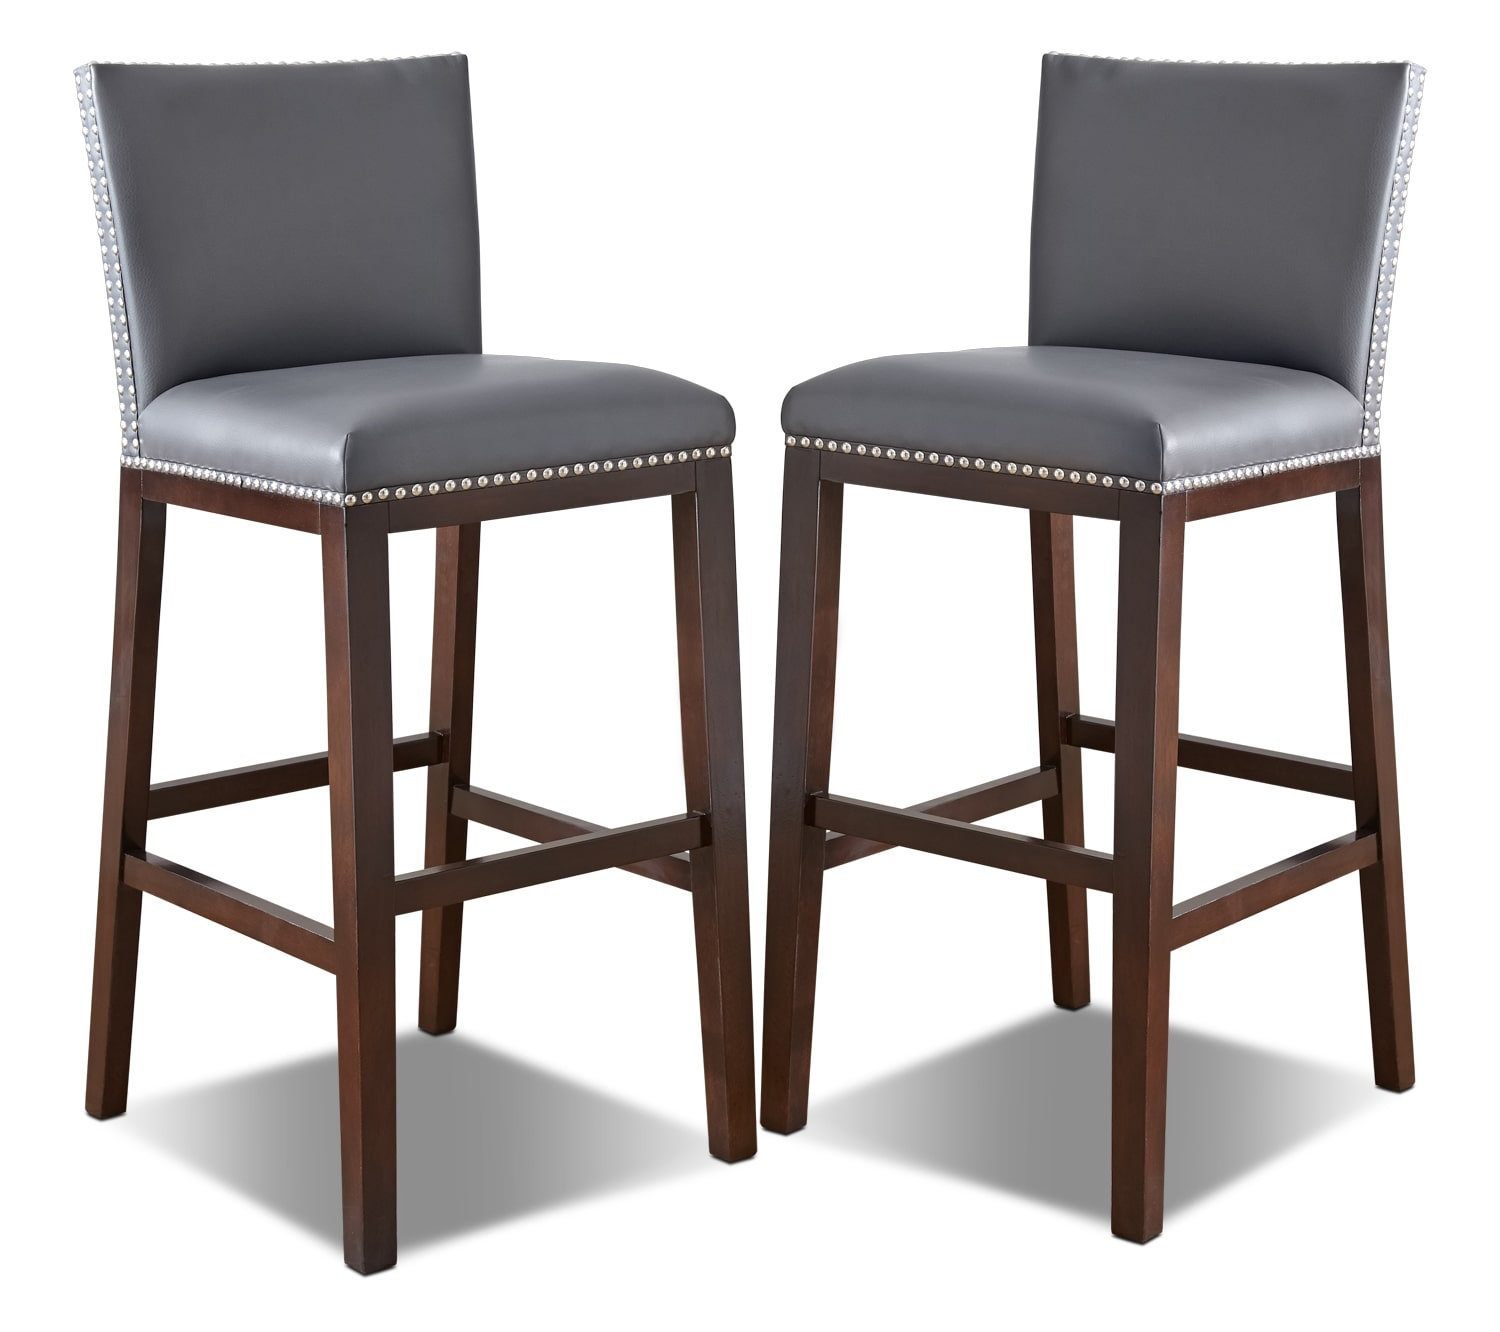 Tiffany Bar-Height Dining Chair, Set of 2 – Grey